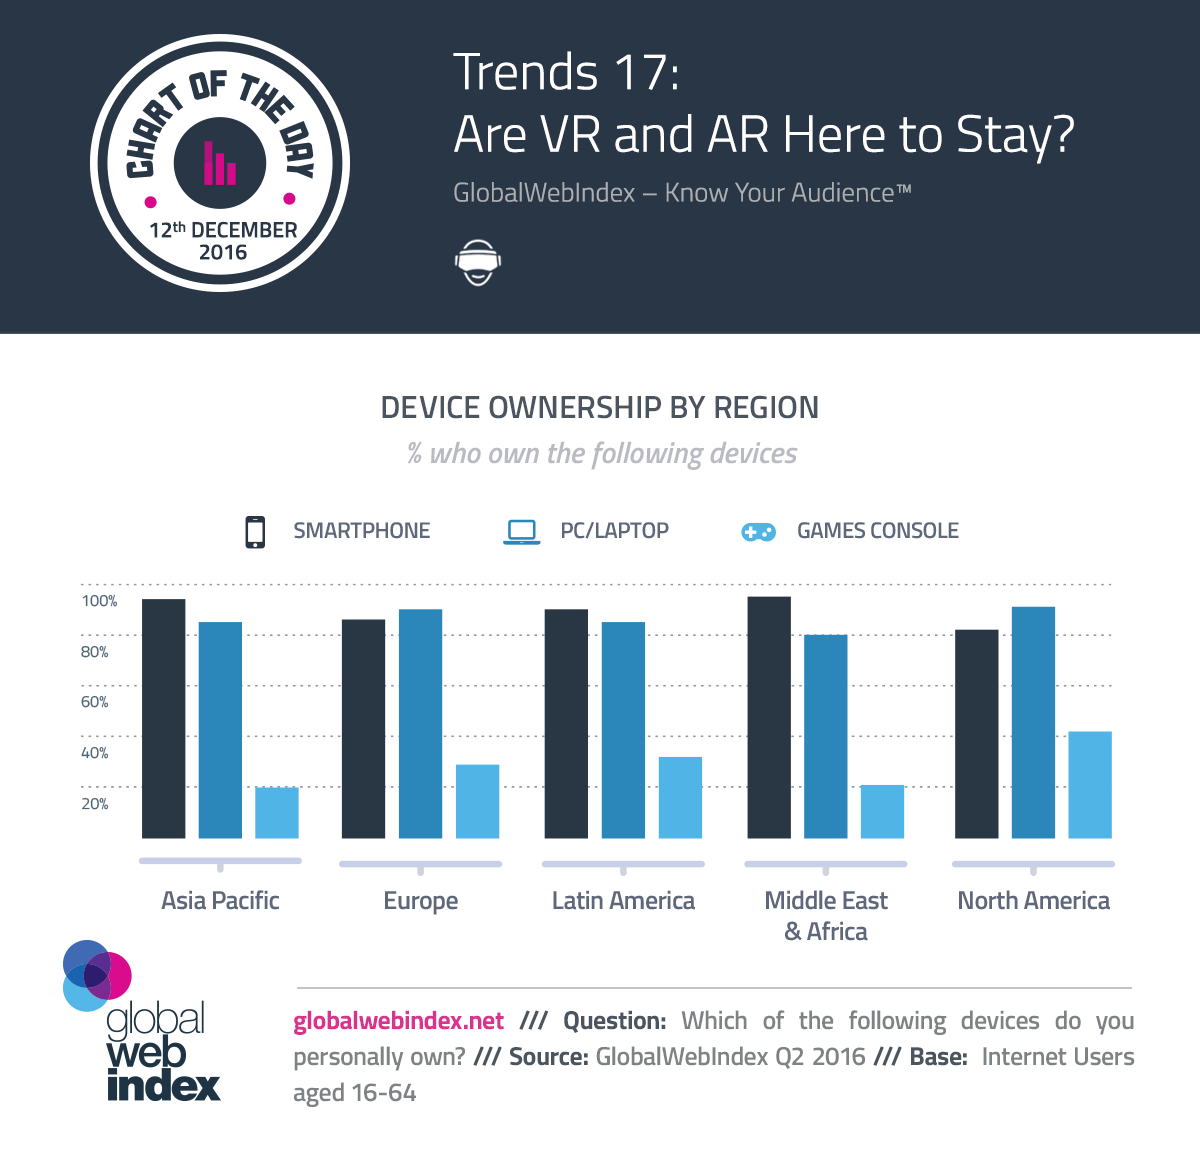 Trends 17: Are VR and AR Here to Stay?